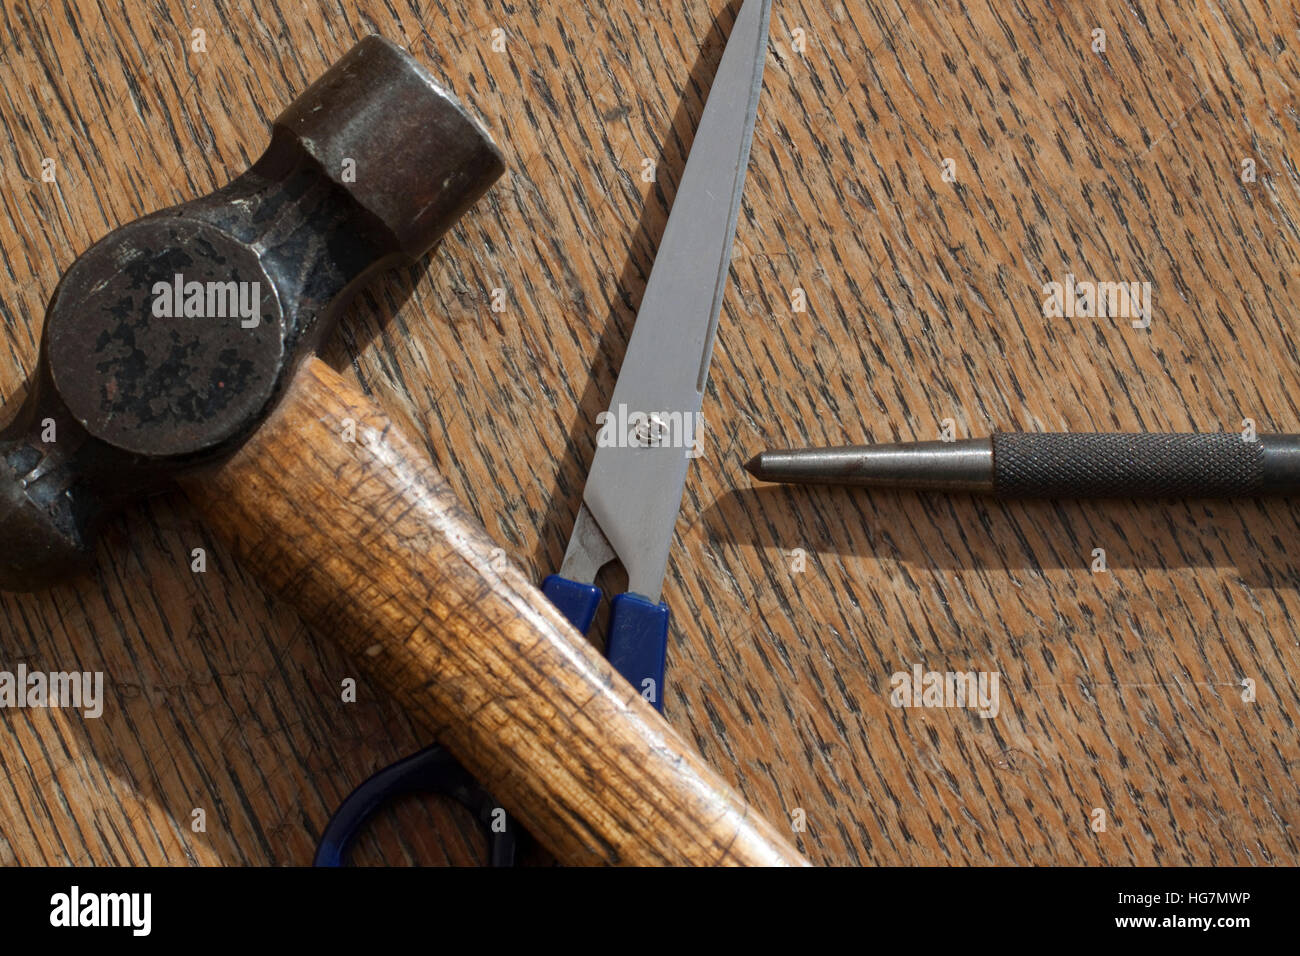 Ball pein hammer, scissors and a centre/centrer punch on a wooden surface Stock Photo